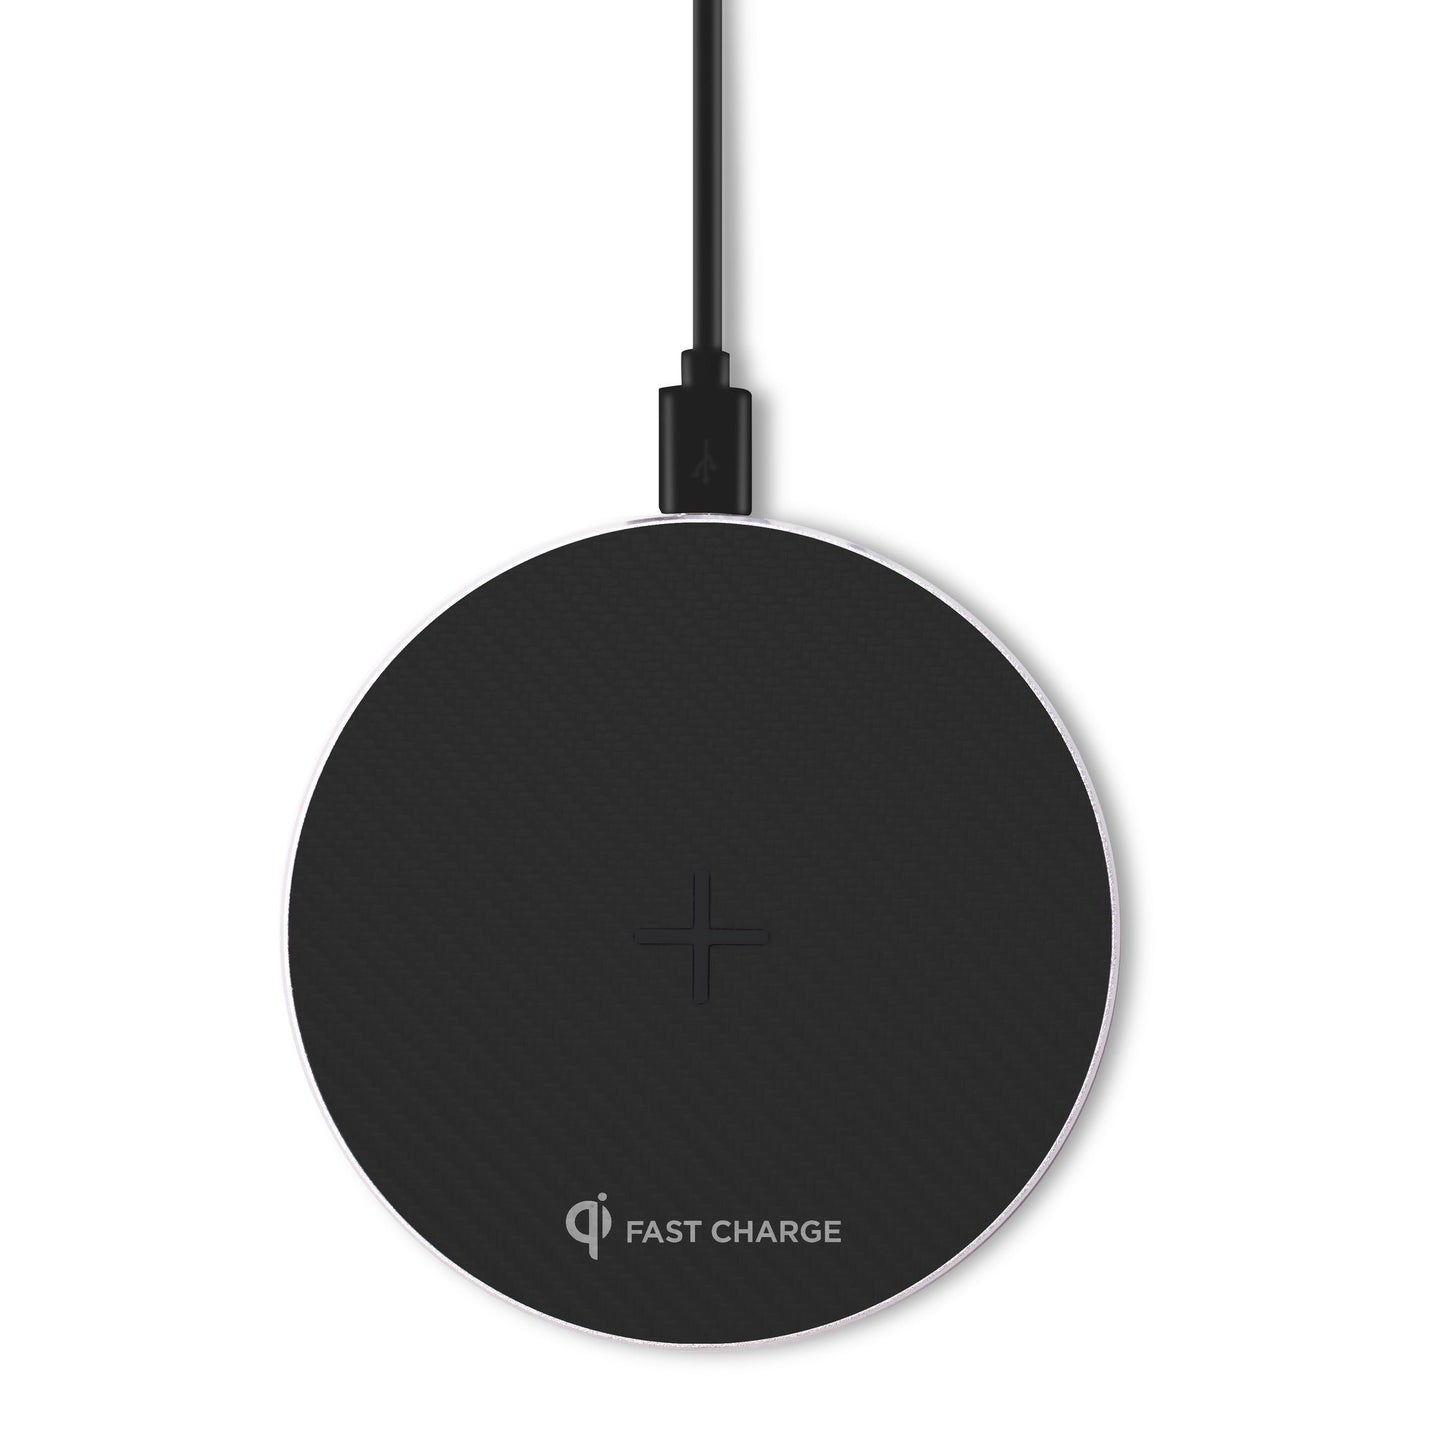 Fast Wireless Charger - Stealth - Black